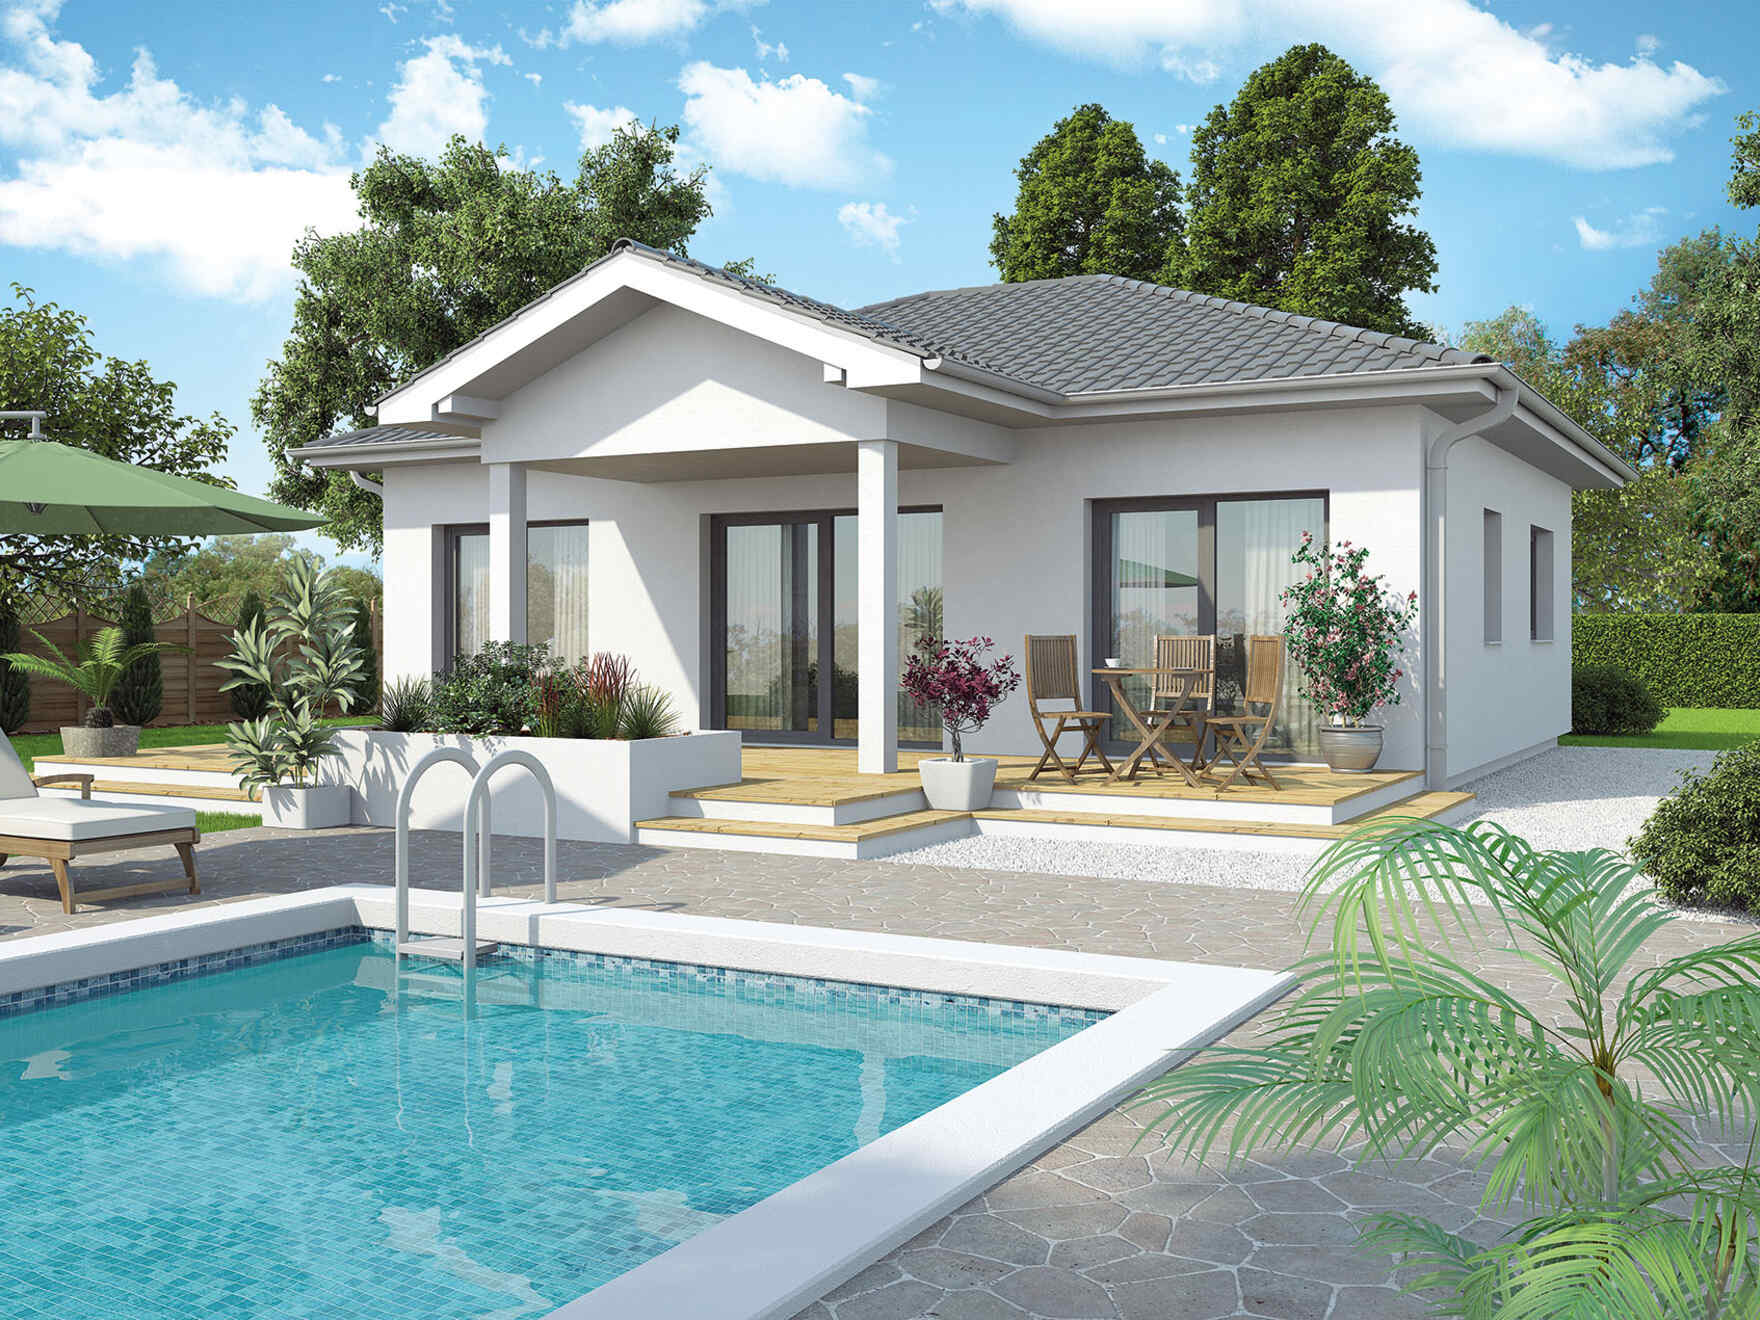 Outstanding Bungalow New Design Vs Vario Haus Prefabricated Houses Largest Home Design Picture Inspirations Pitcheantrous